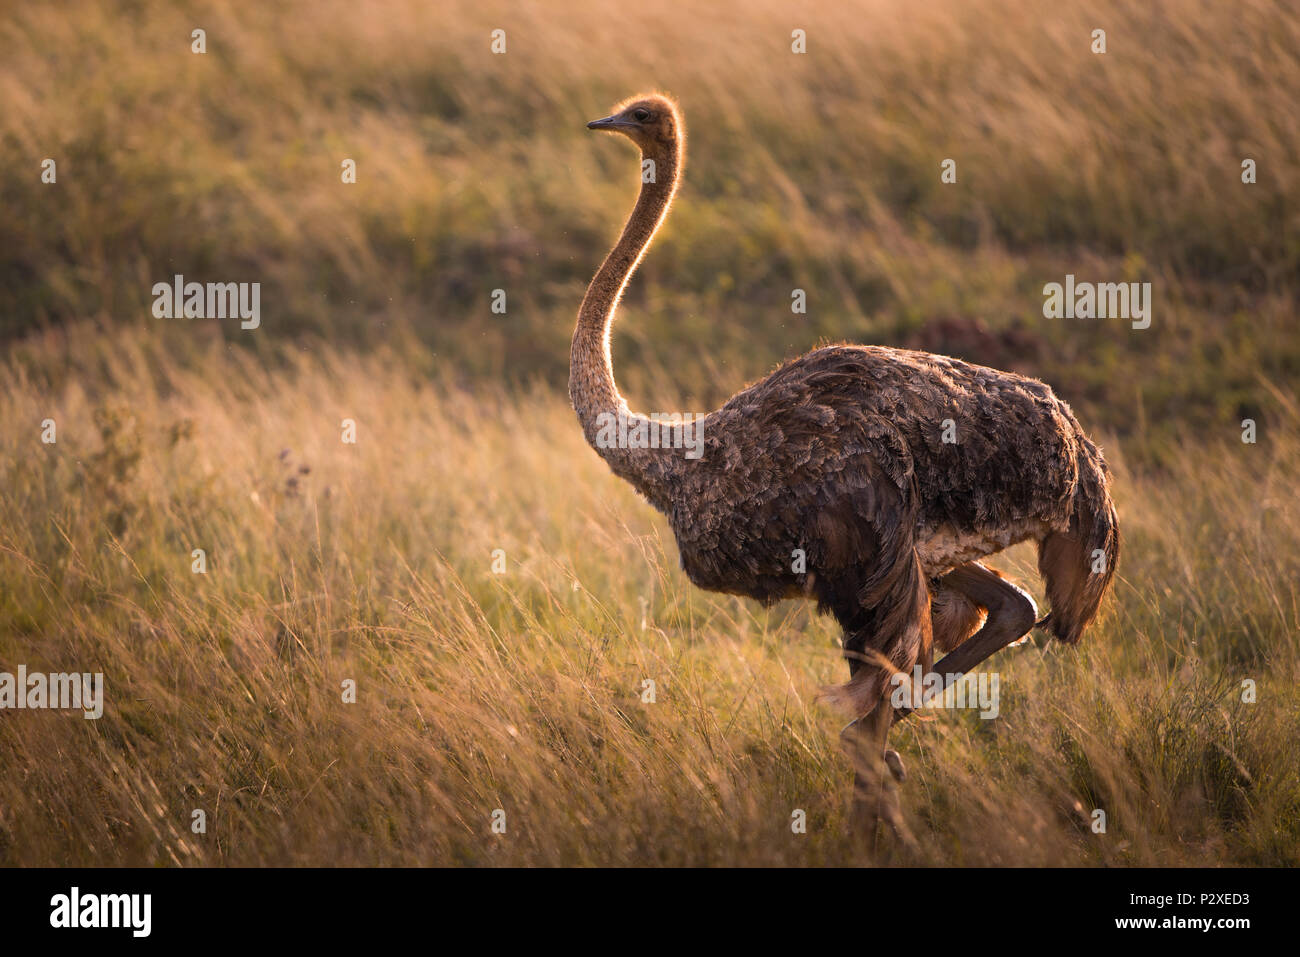 Lone female ostrich in grassy African savannah at golden hour - Stock Image